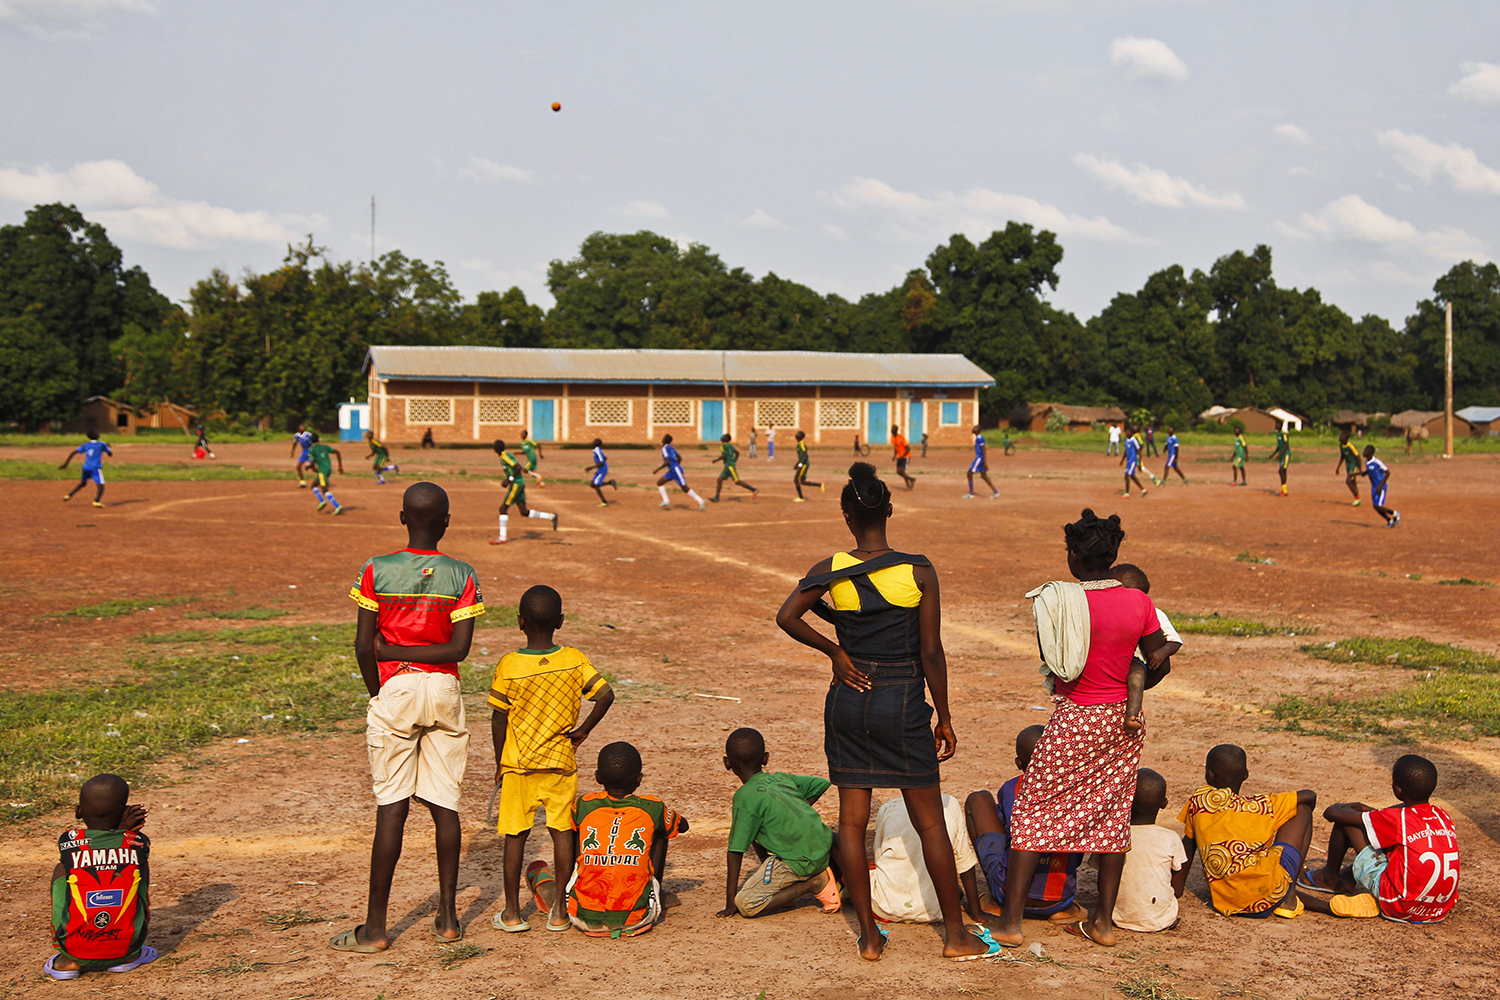 Women and children watch a football game in Bossangoa on June 7, 2019. The tournament was organized by the charity War Child to bring the community together and encourage social cohesion following years of fighting.